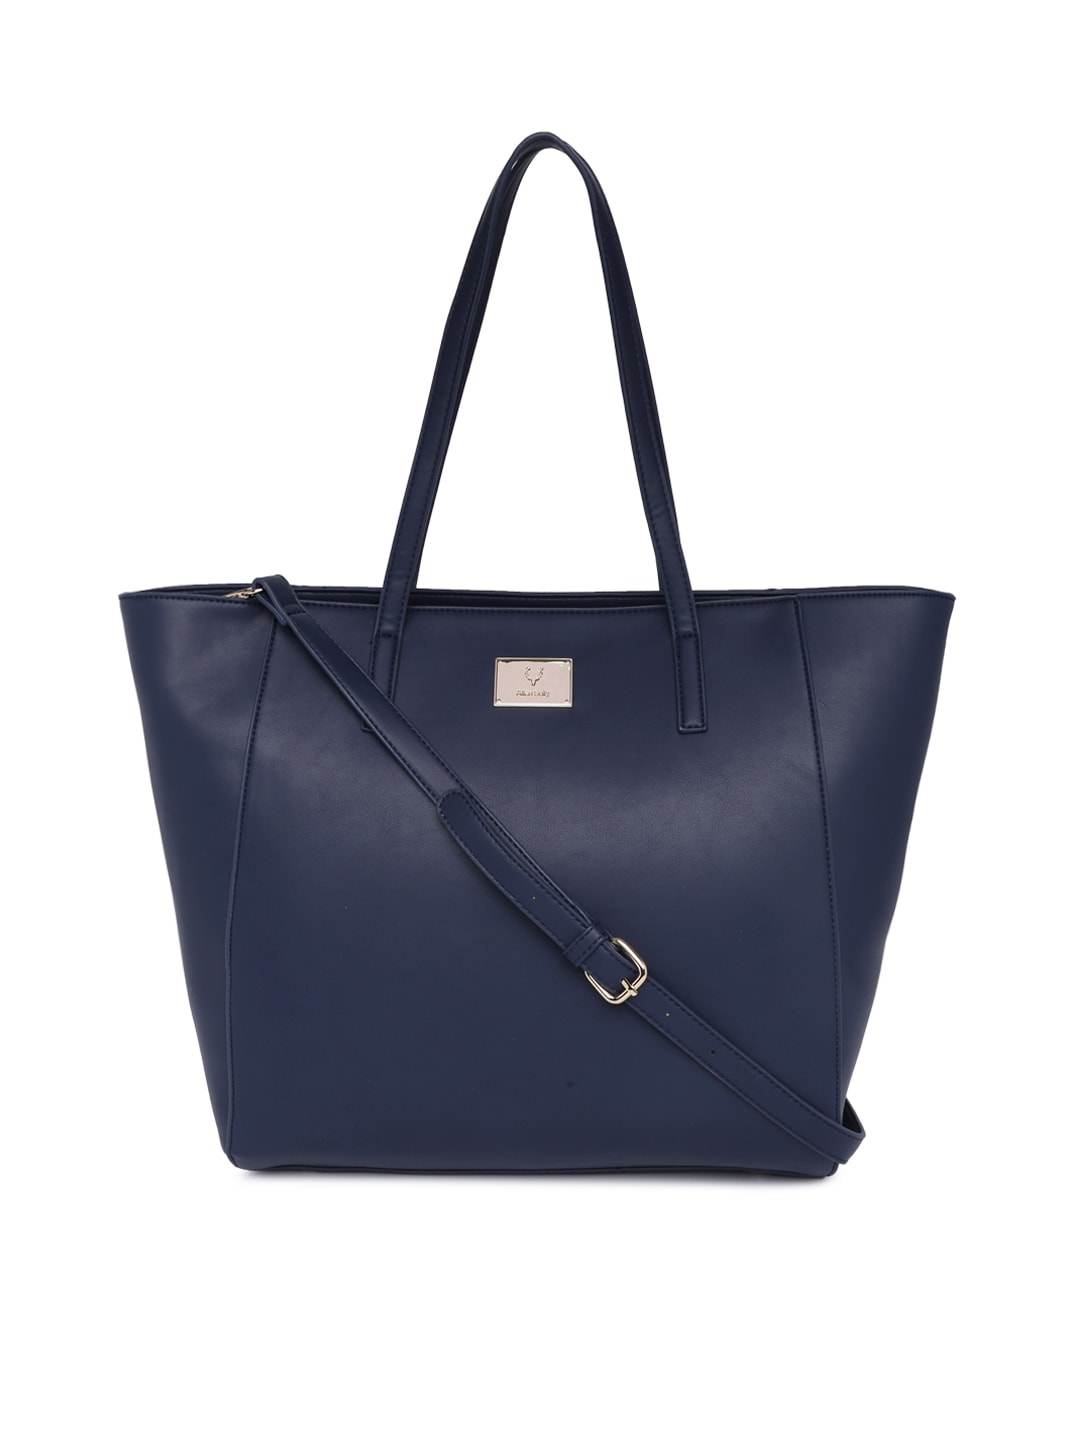 79fb6467f7d Bags Online - Buy Bags for men and Women Online in India